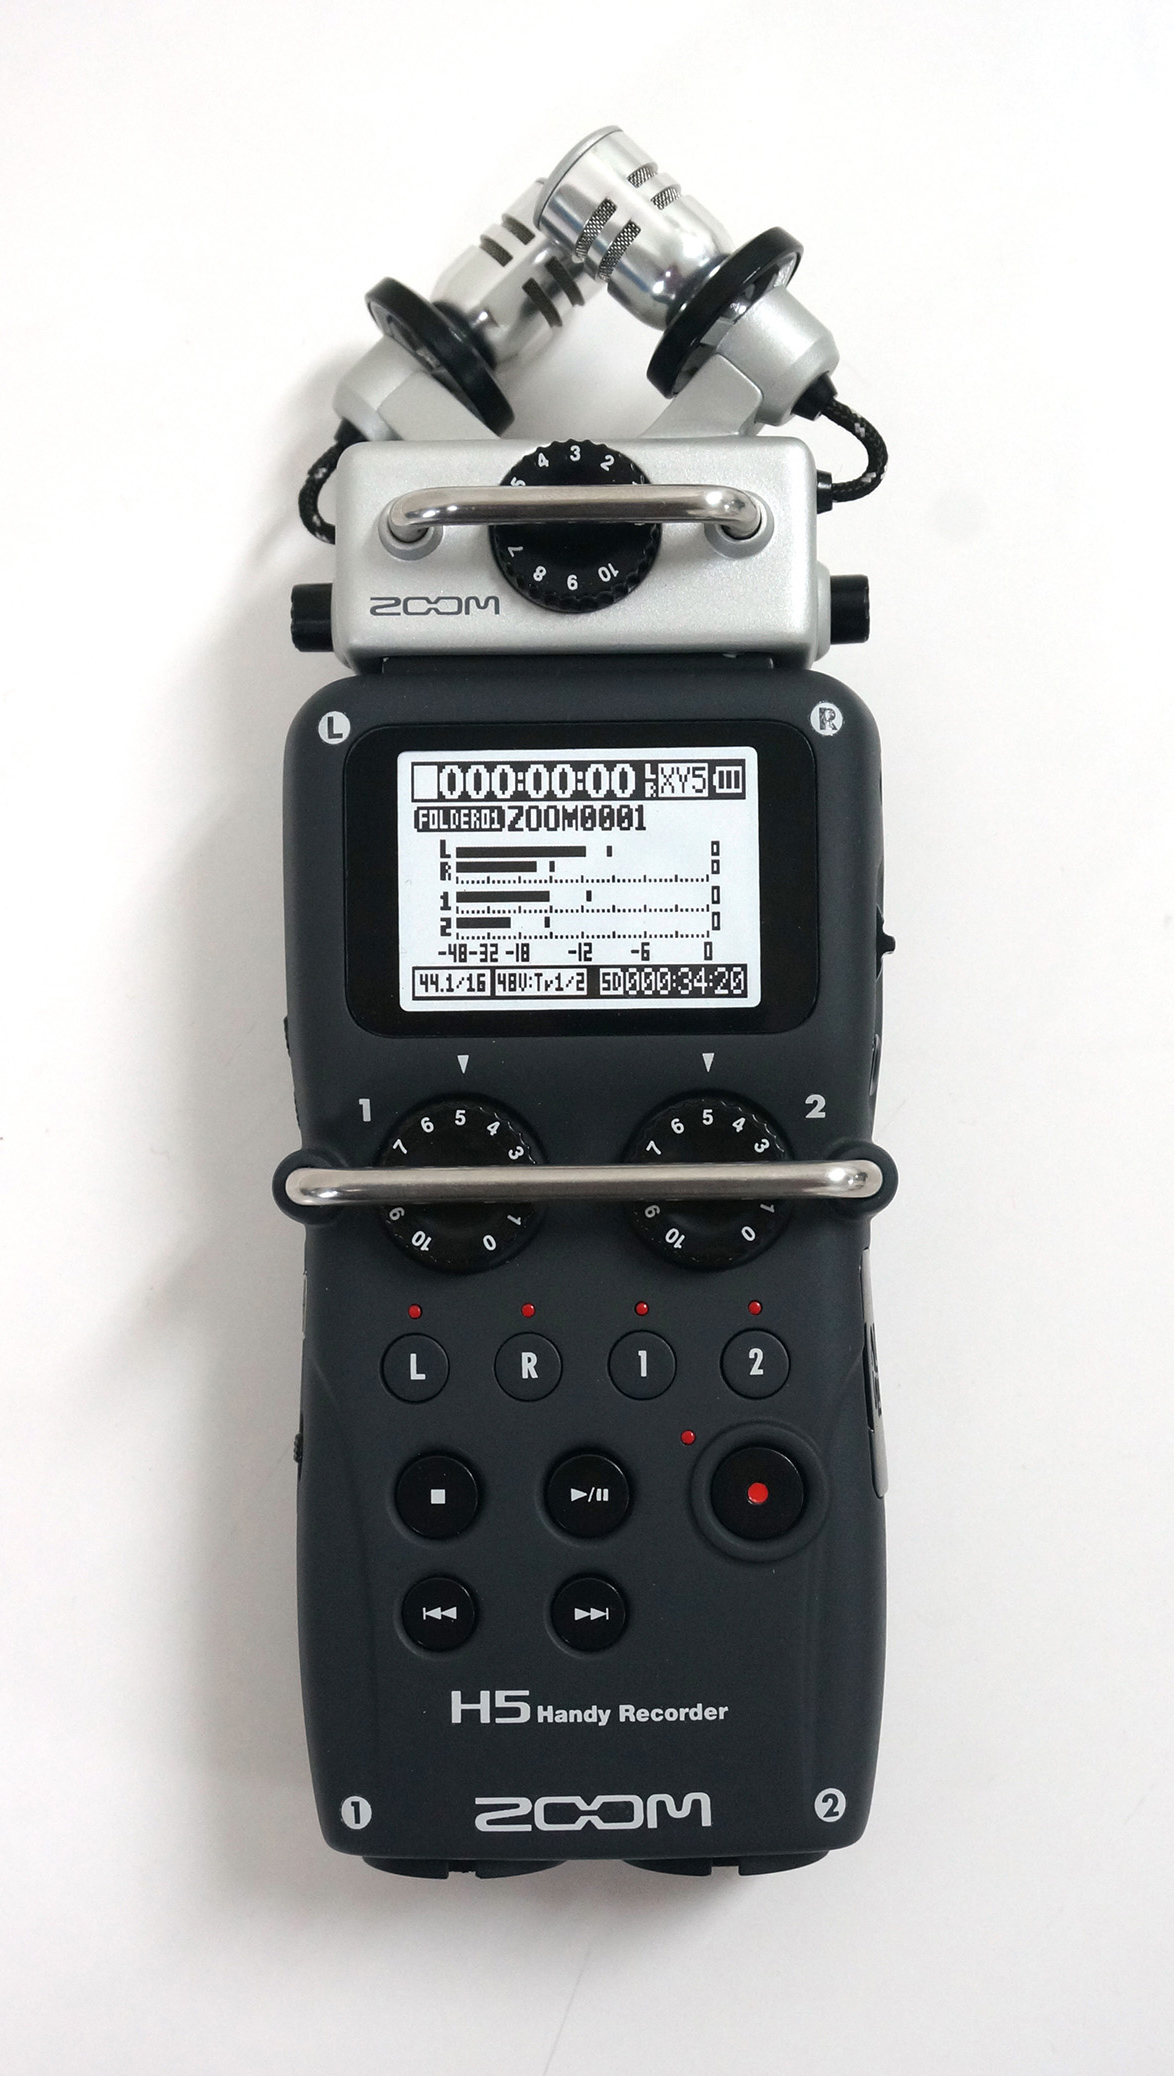 Zoom Introduces the H5 Handy Recorder